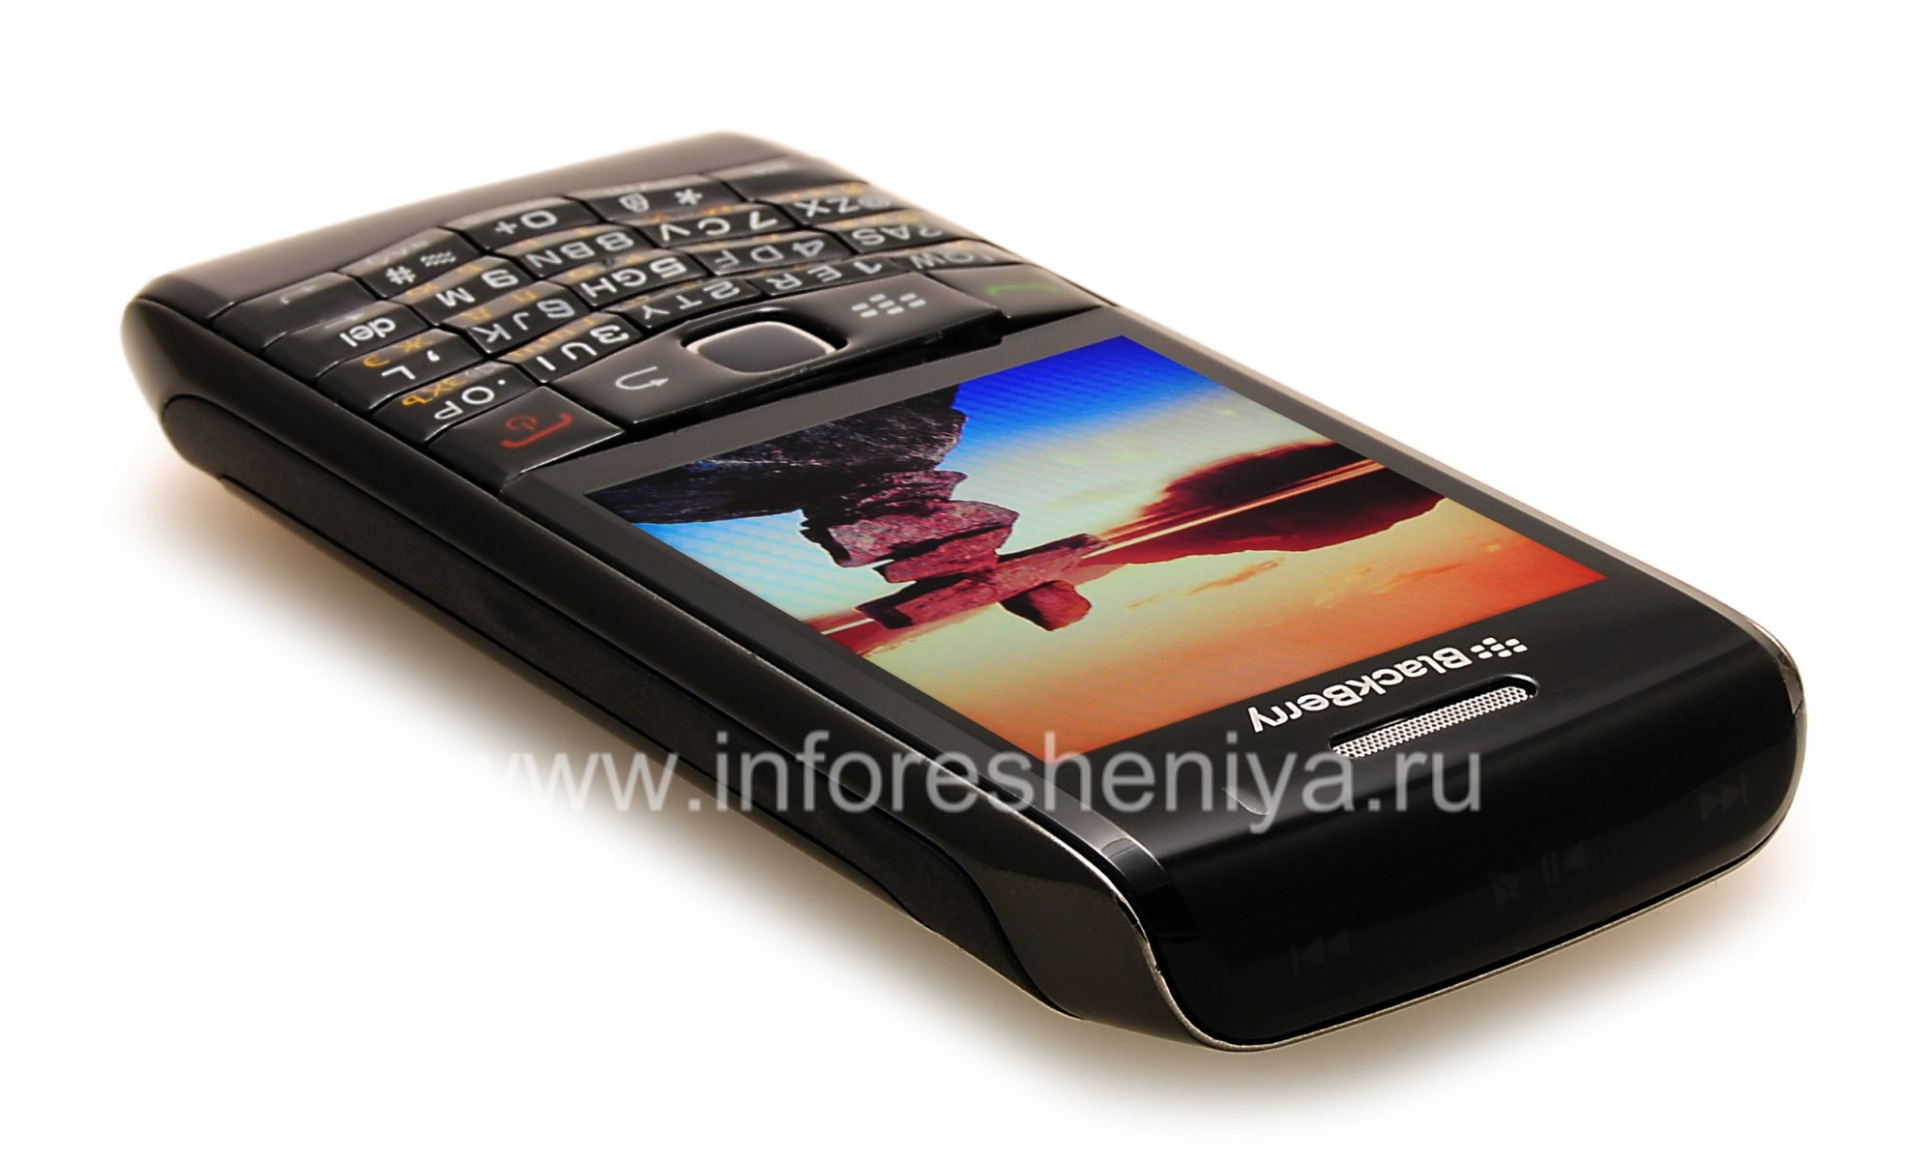 ... Photo 24 — Smartphone BlackBerry 9100 Pearl 3G, Black ...